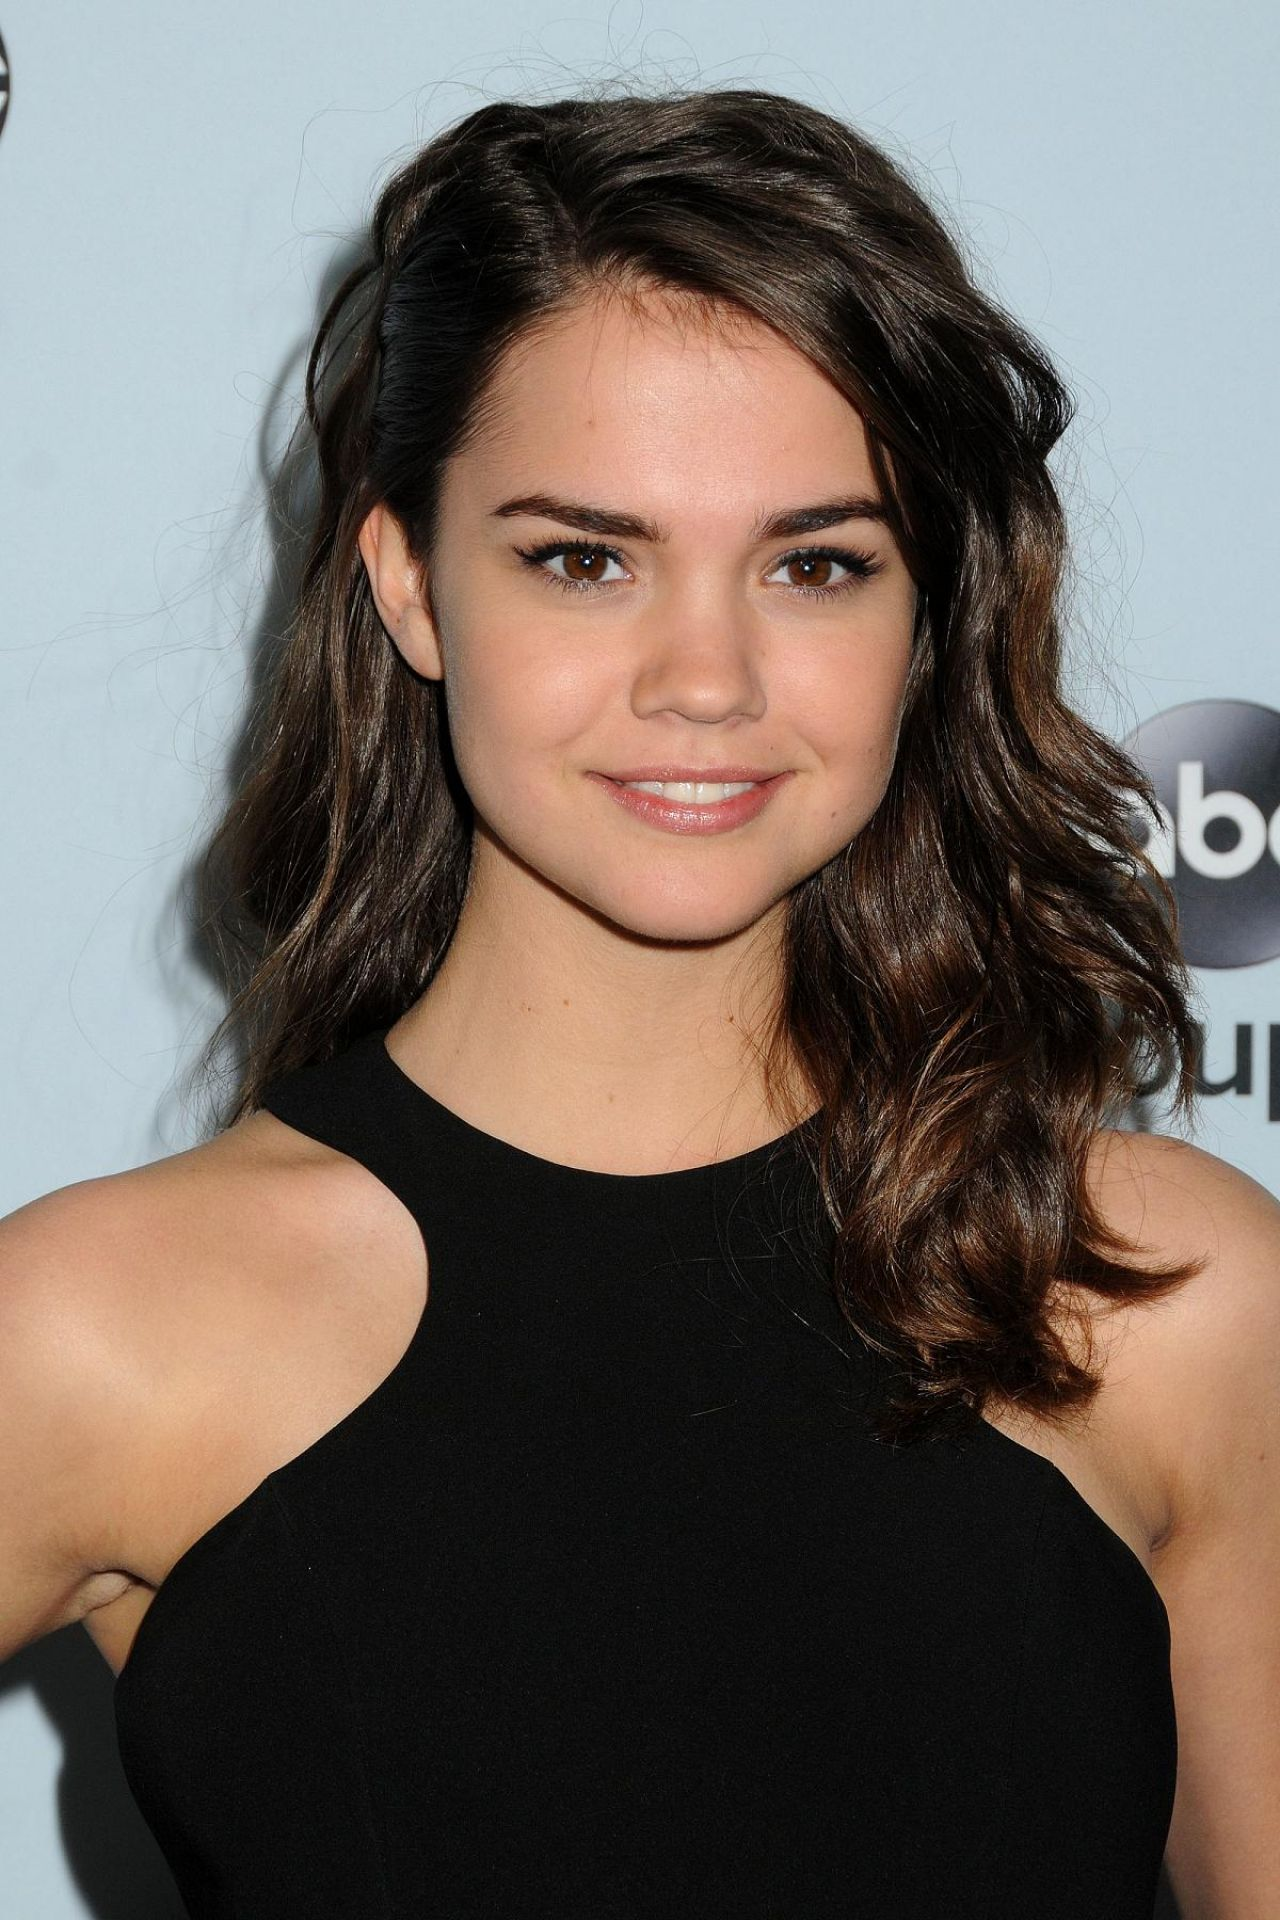 Maia Mitchell naked (88 photos), Topless, Sideboobs, Boobs, braless 2006